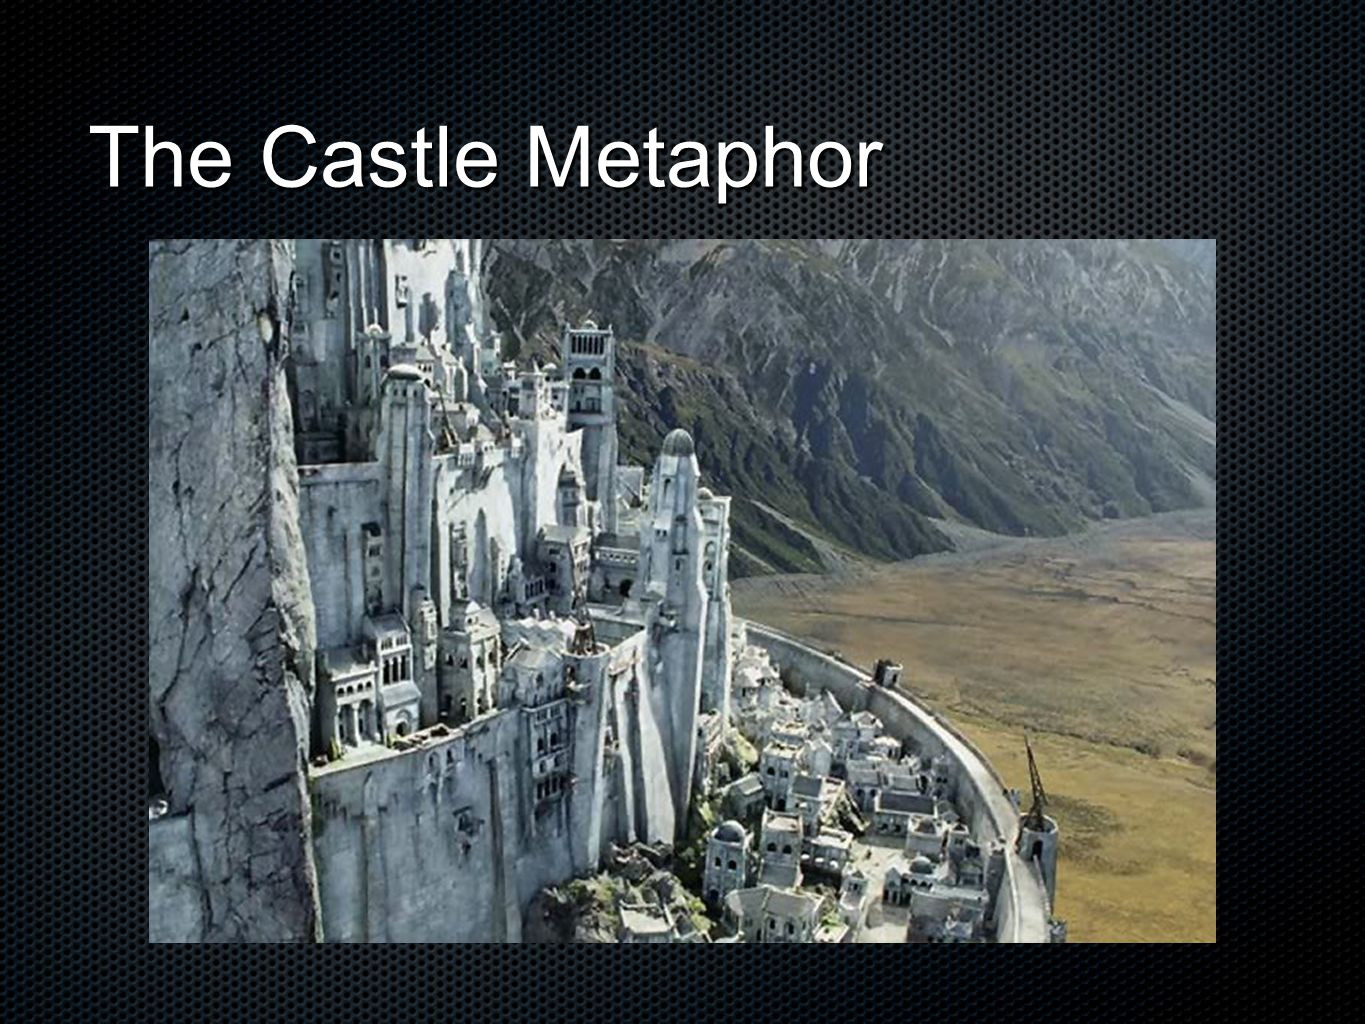 The Castle Metaphor